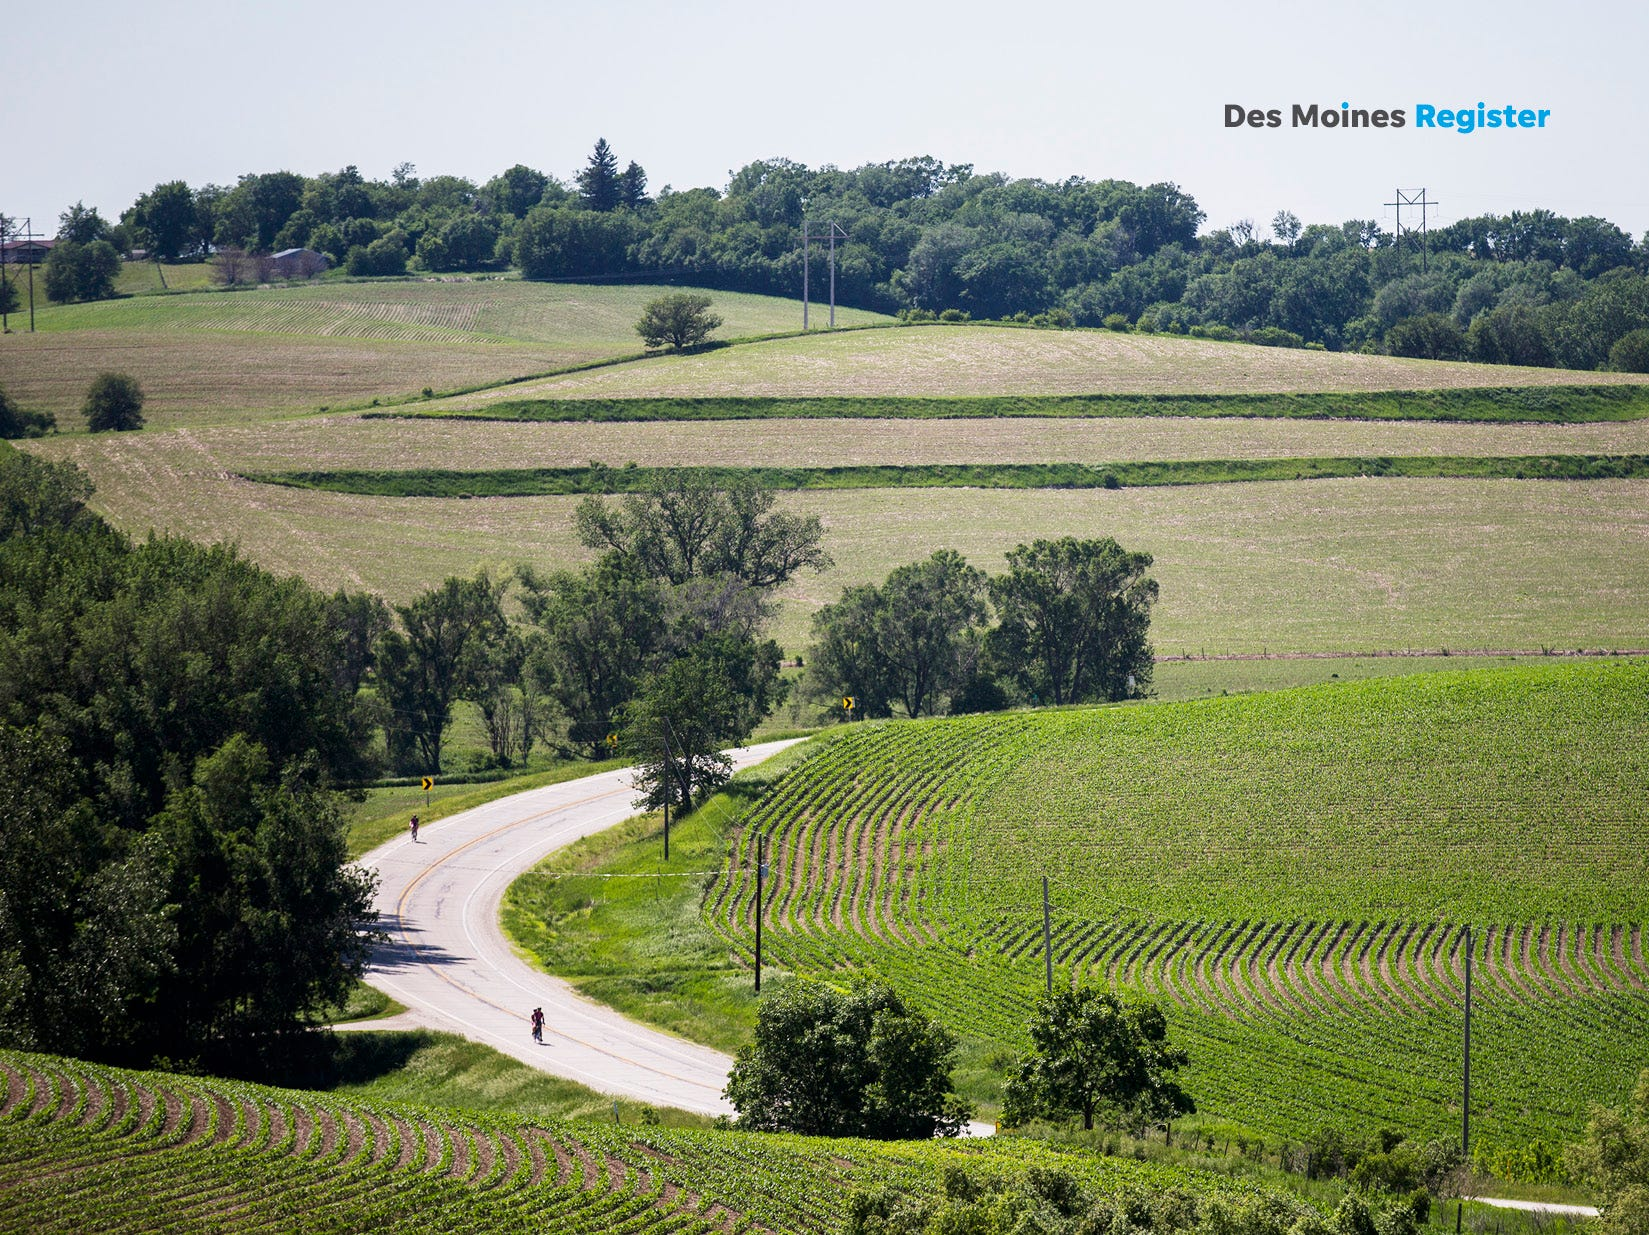 "<b>June: </b>Riders climb hills outside of Denison on Day 1 of the 2018 RAGBRAI Pre-Ride Route Inspection. The Register's 2019 photo calendar is available for $18 at <a href=""https://shopdmregister.com/collections/photo-gifts/products/2019-des-moines-register-photo-calendar?utm_source=desmoinesregister&utm_medium=link&utm_campaign=launch_gallery"" target=""_blank"">ShopDMRegister.com. </a>"